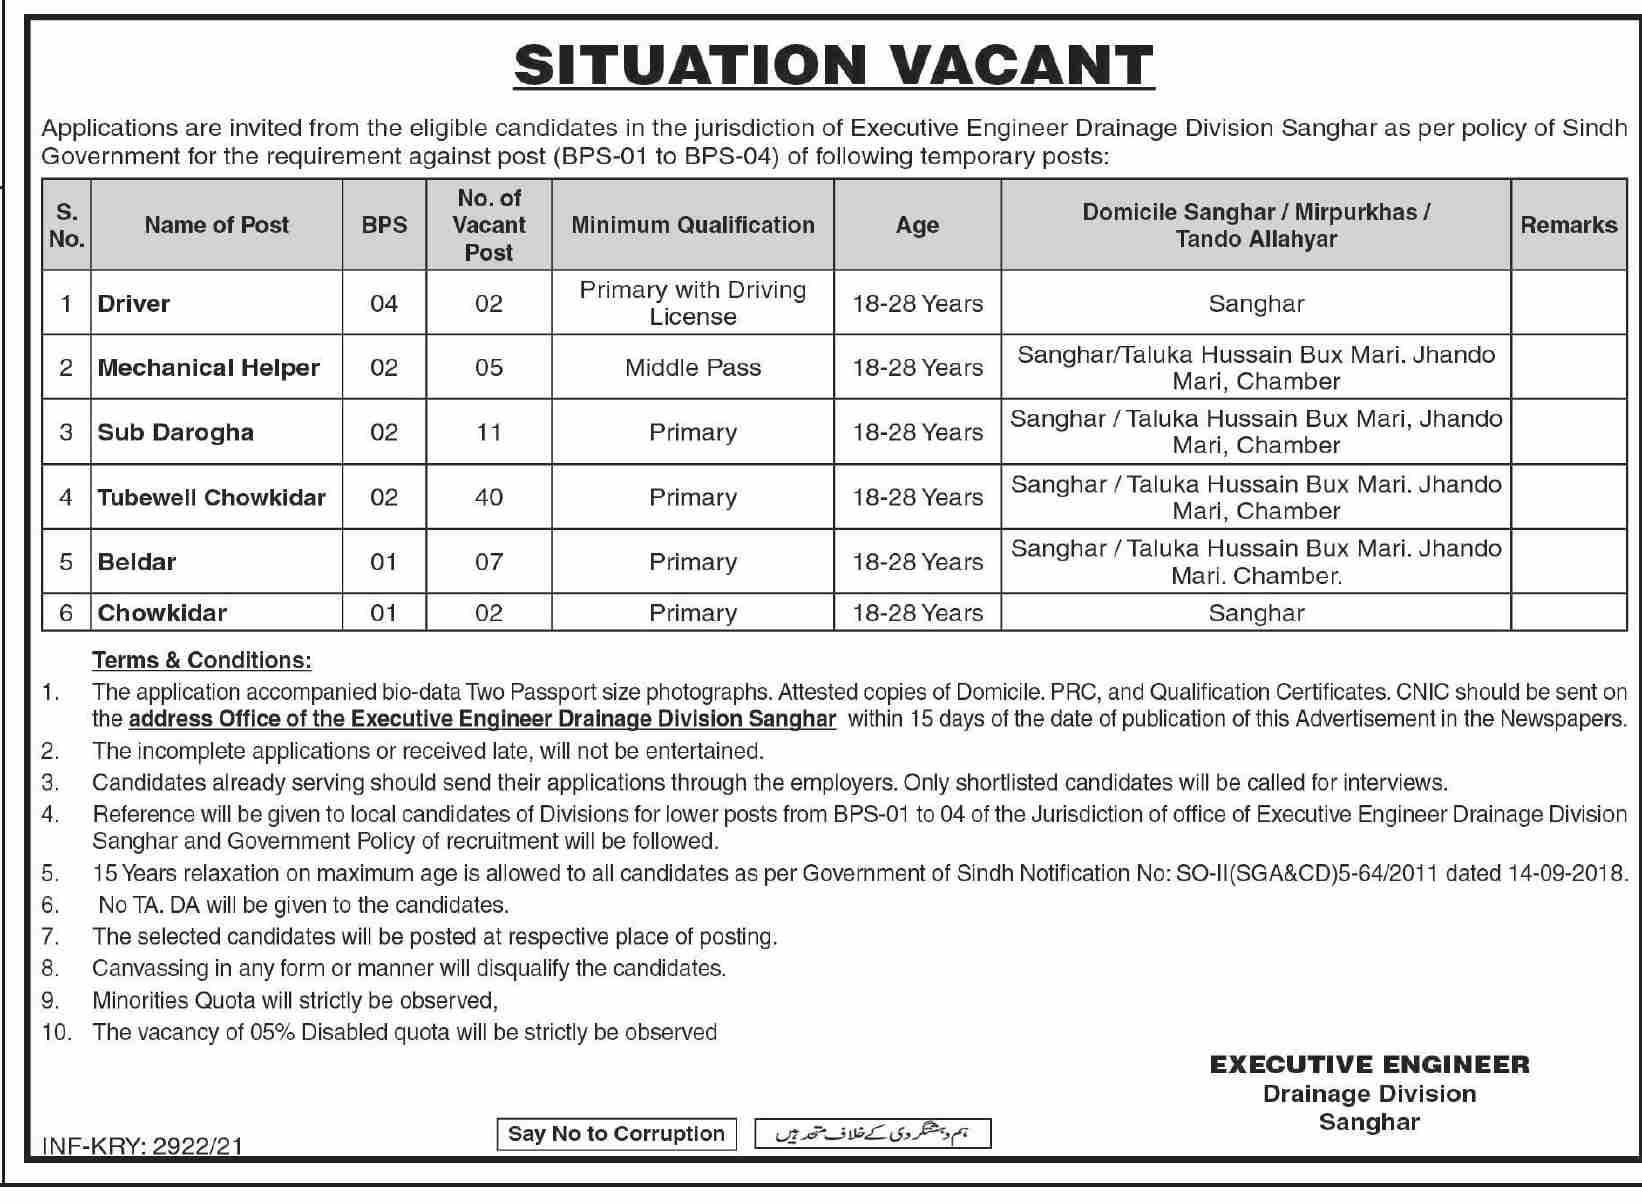 Executive Engineer Office Drainage Division Sanghar Jobs 2021 in Pakistan